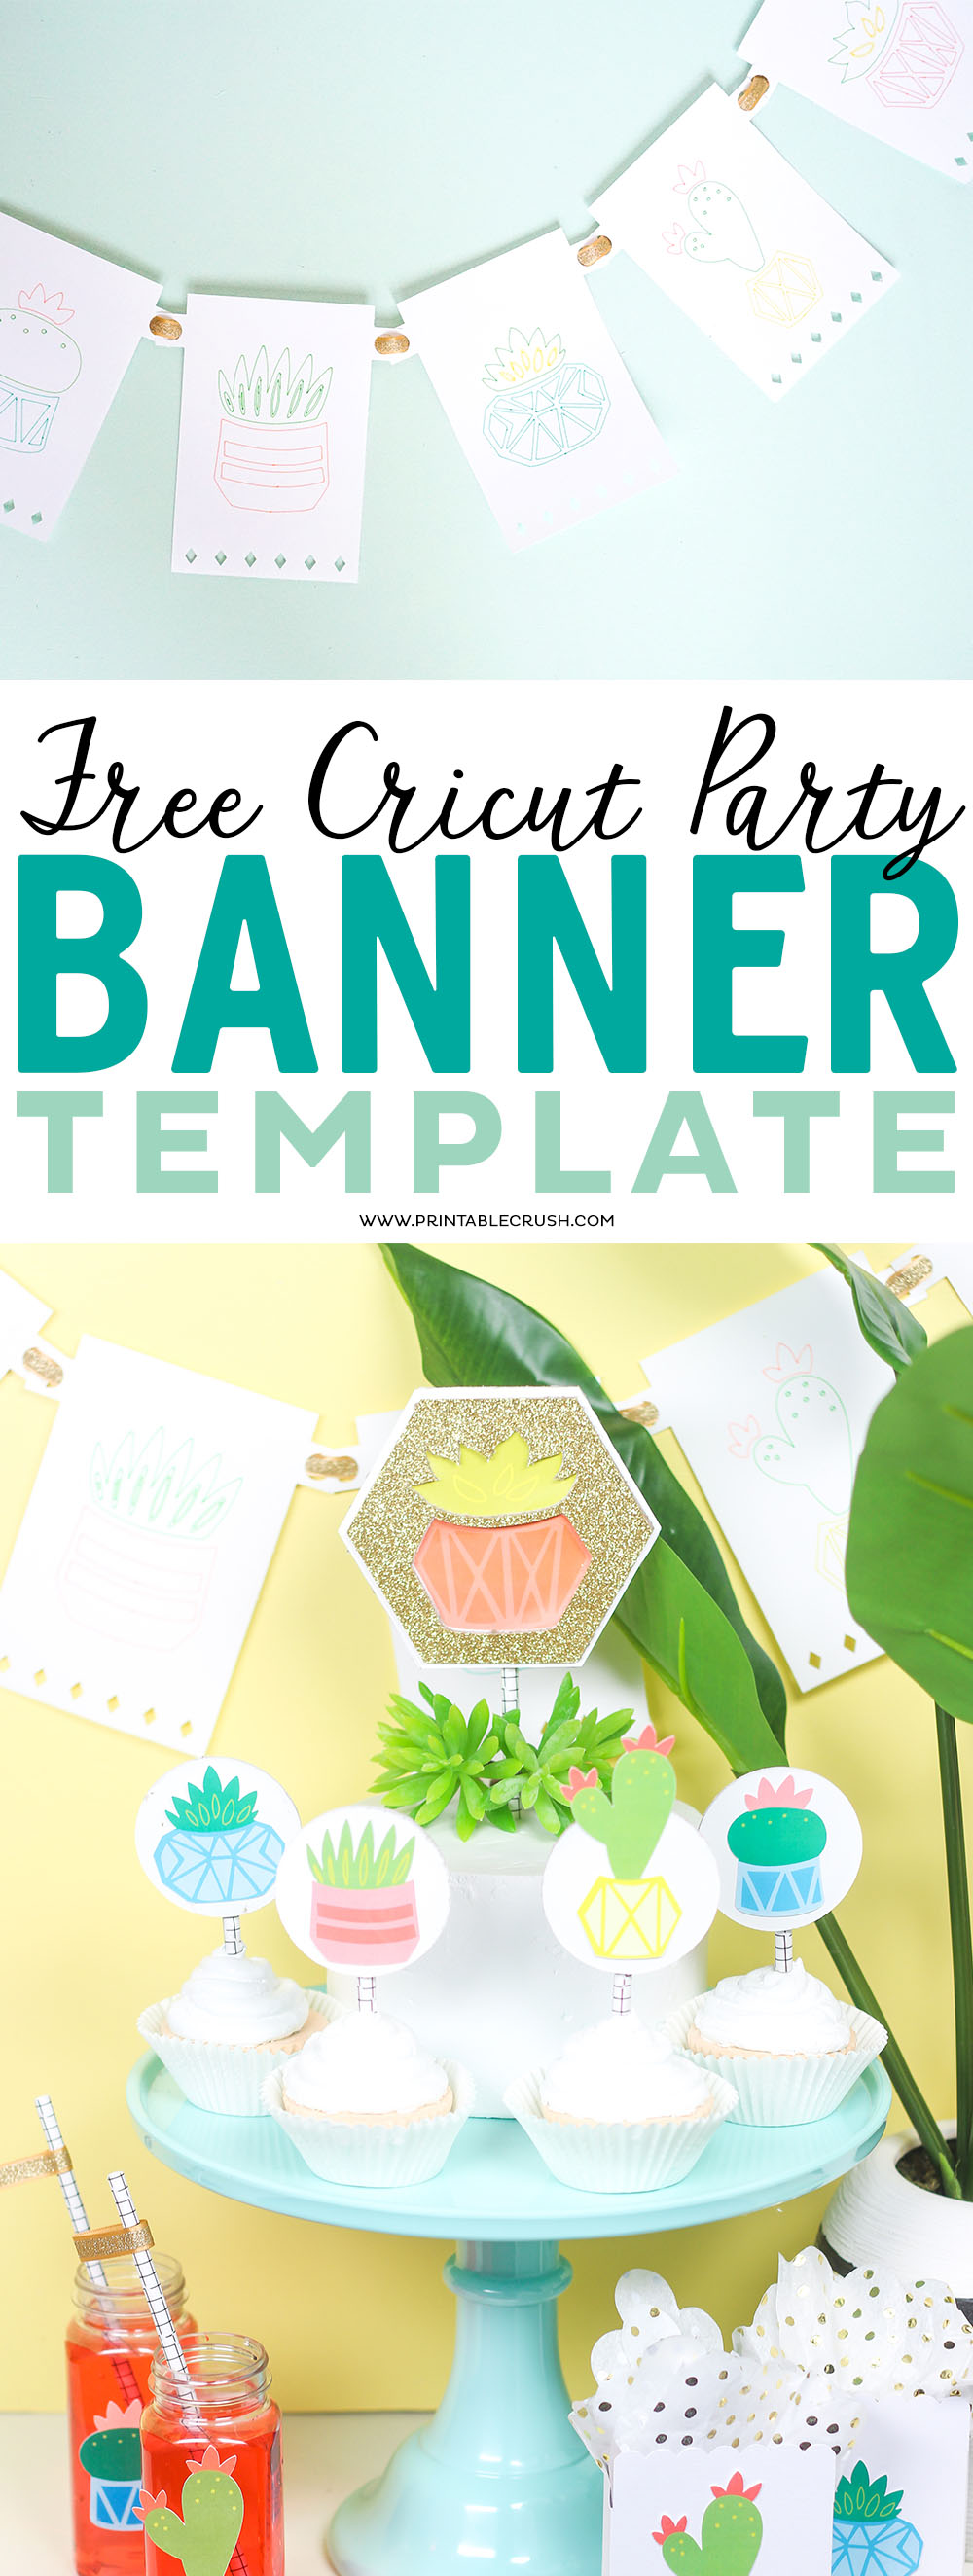 Free cricut party banner template printable crush what youll need to make this succulent banner using the free cricut party banner template maxwellsz